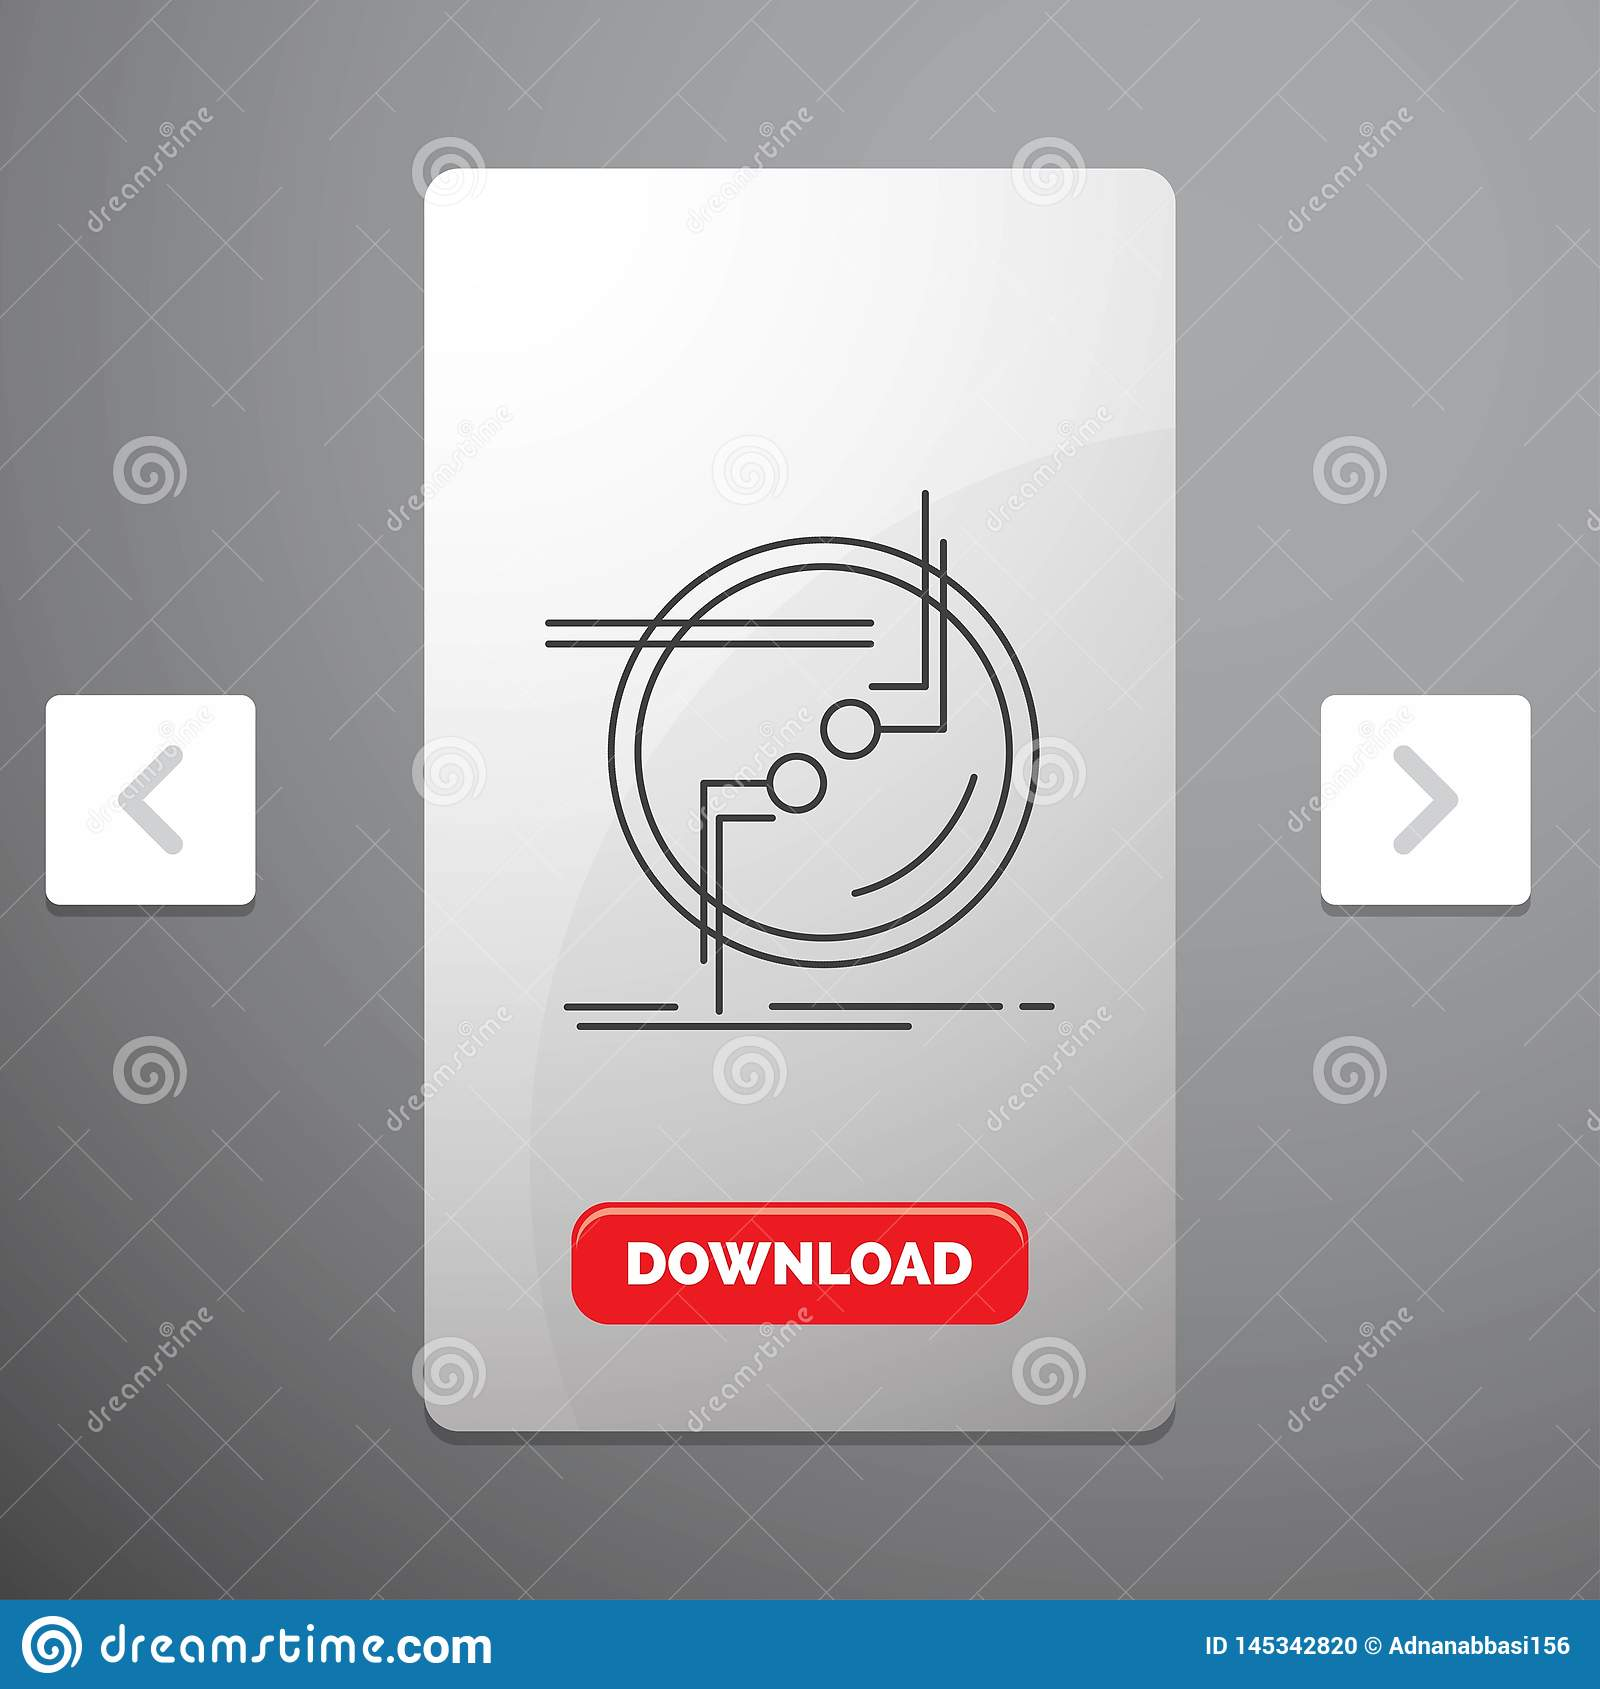 chain, connect, connection, link, wire Line Icon in Carousal Pagination Slider Design & Red Download Button